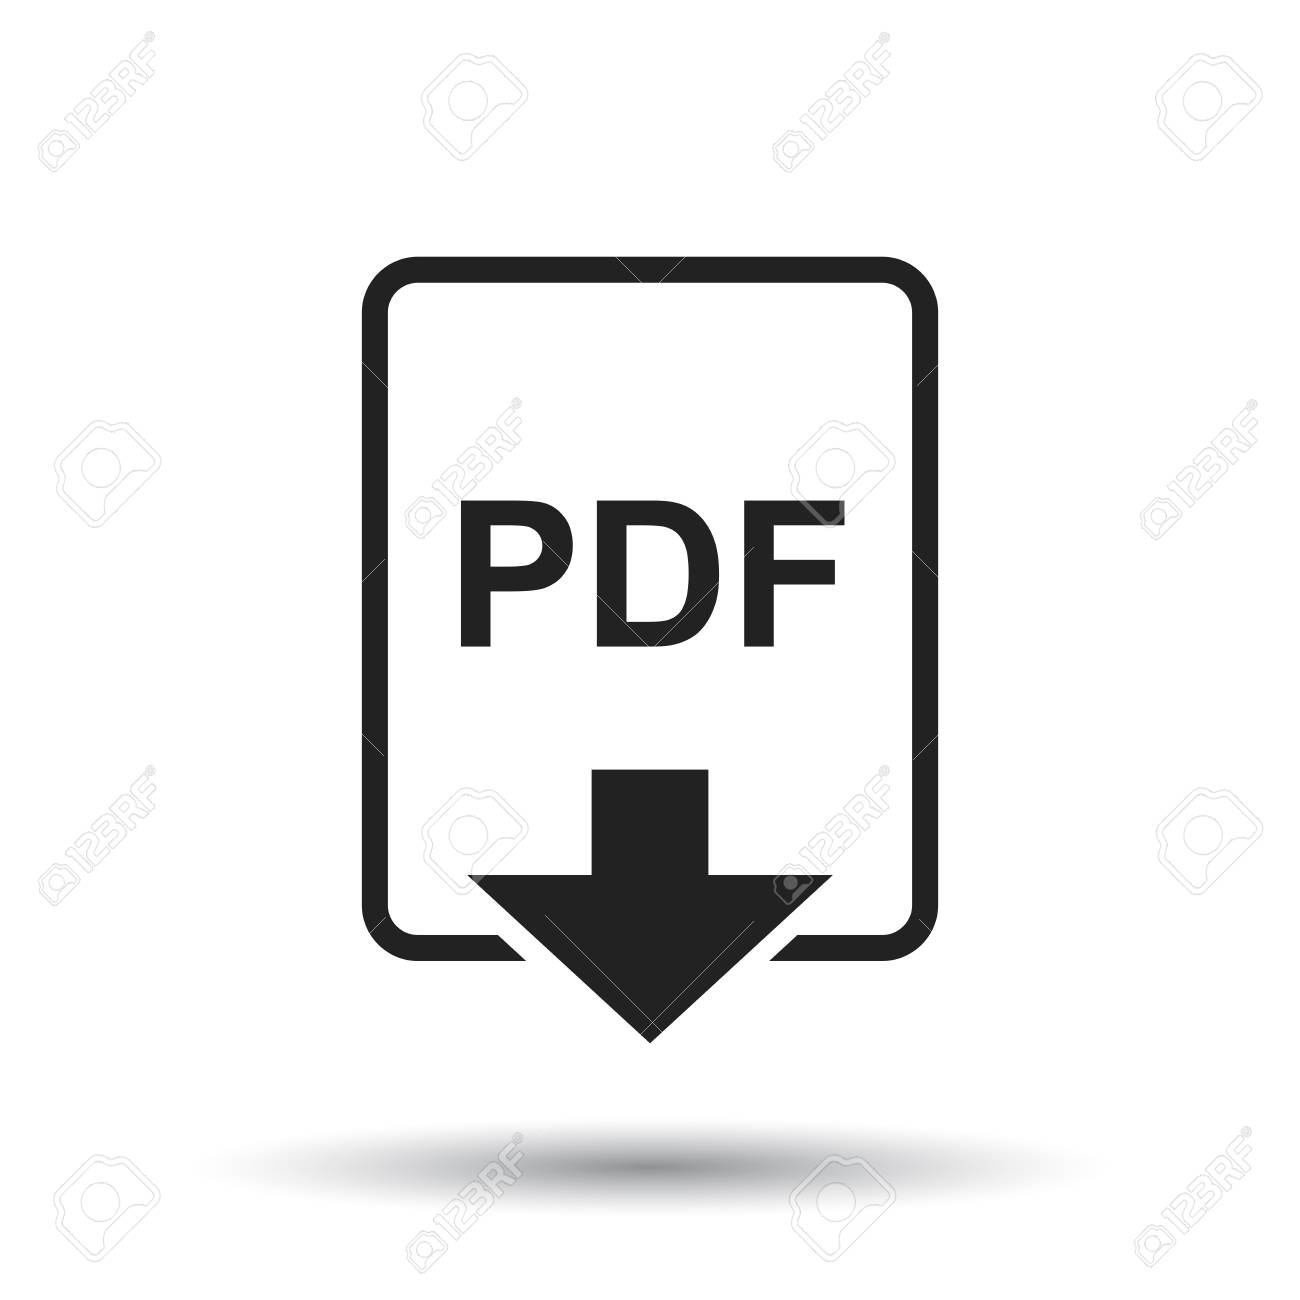 Download pdf button. Downloading document concept. File with pdf.